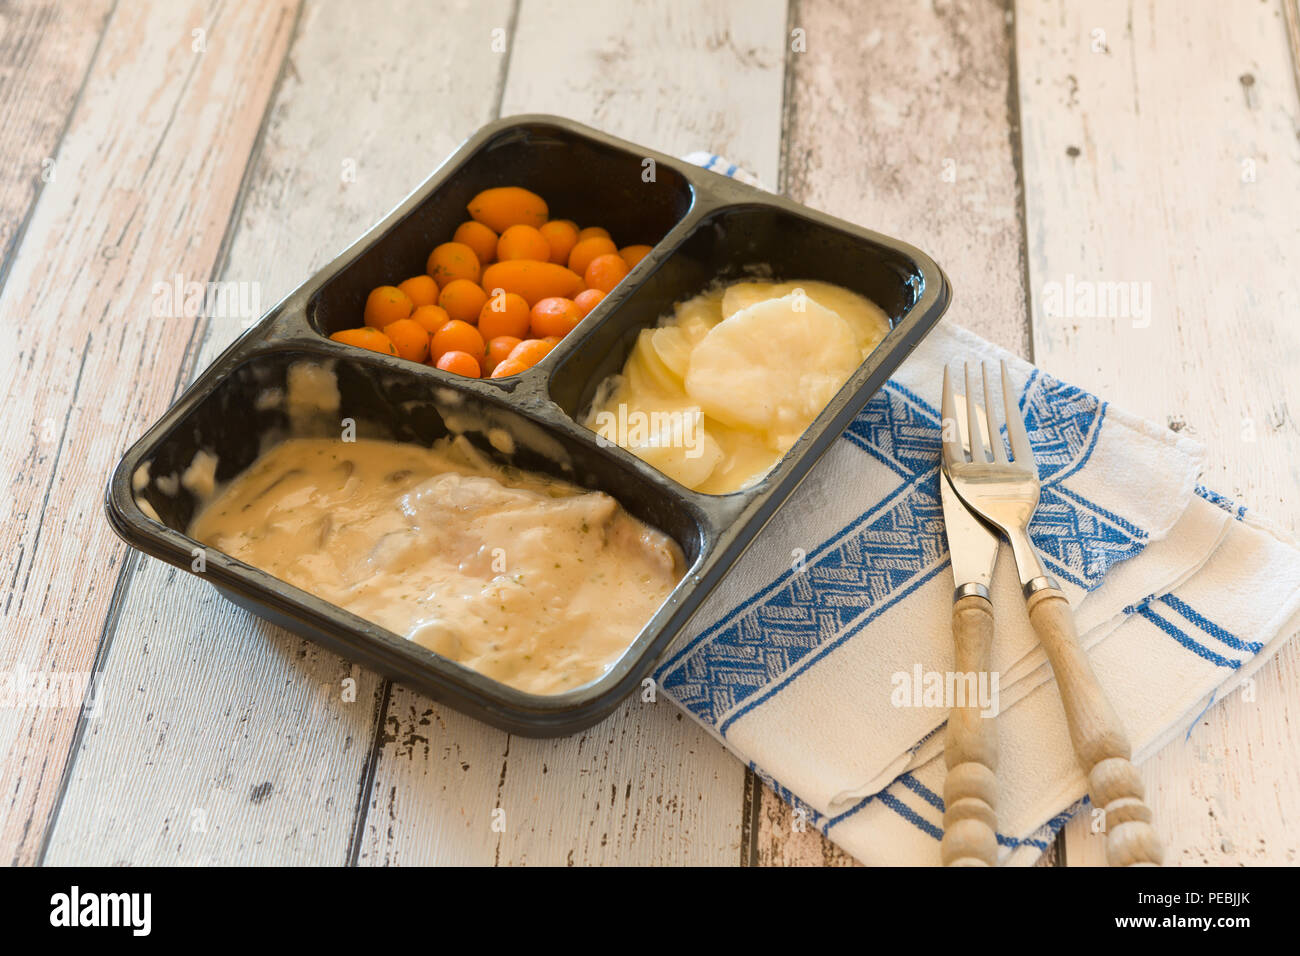 Plastic container with unhealthy and unappealing tv dinner - Stock Image